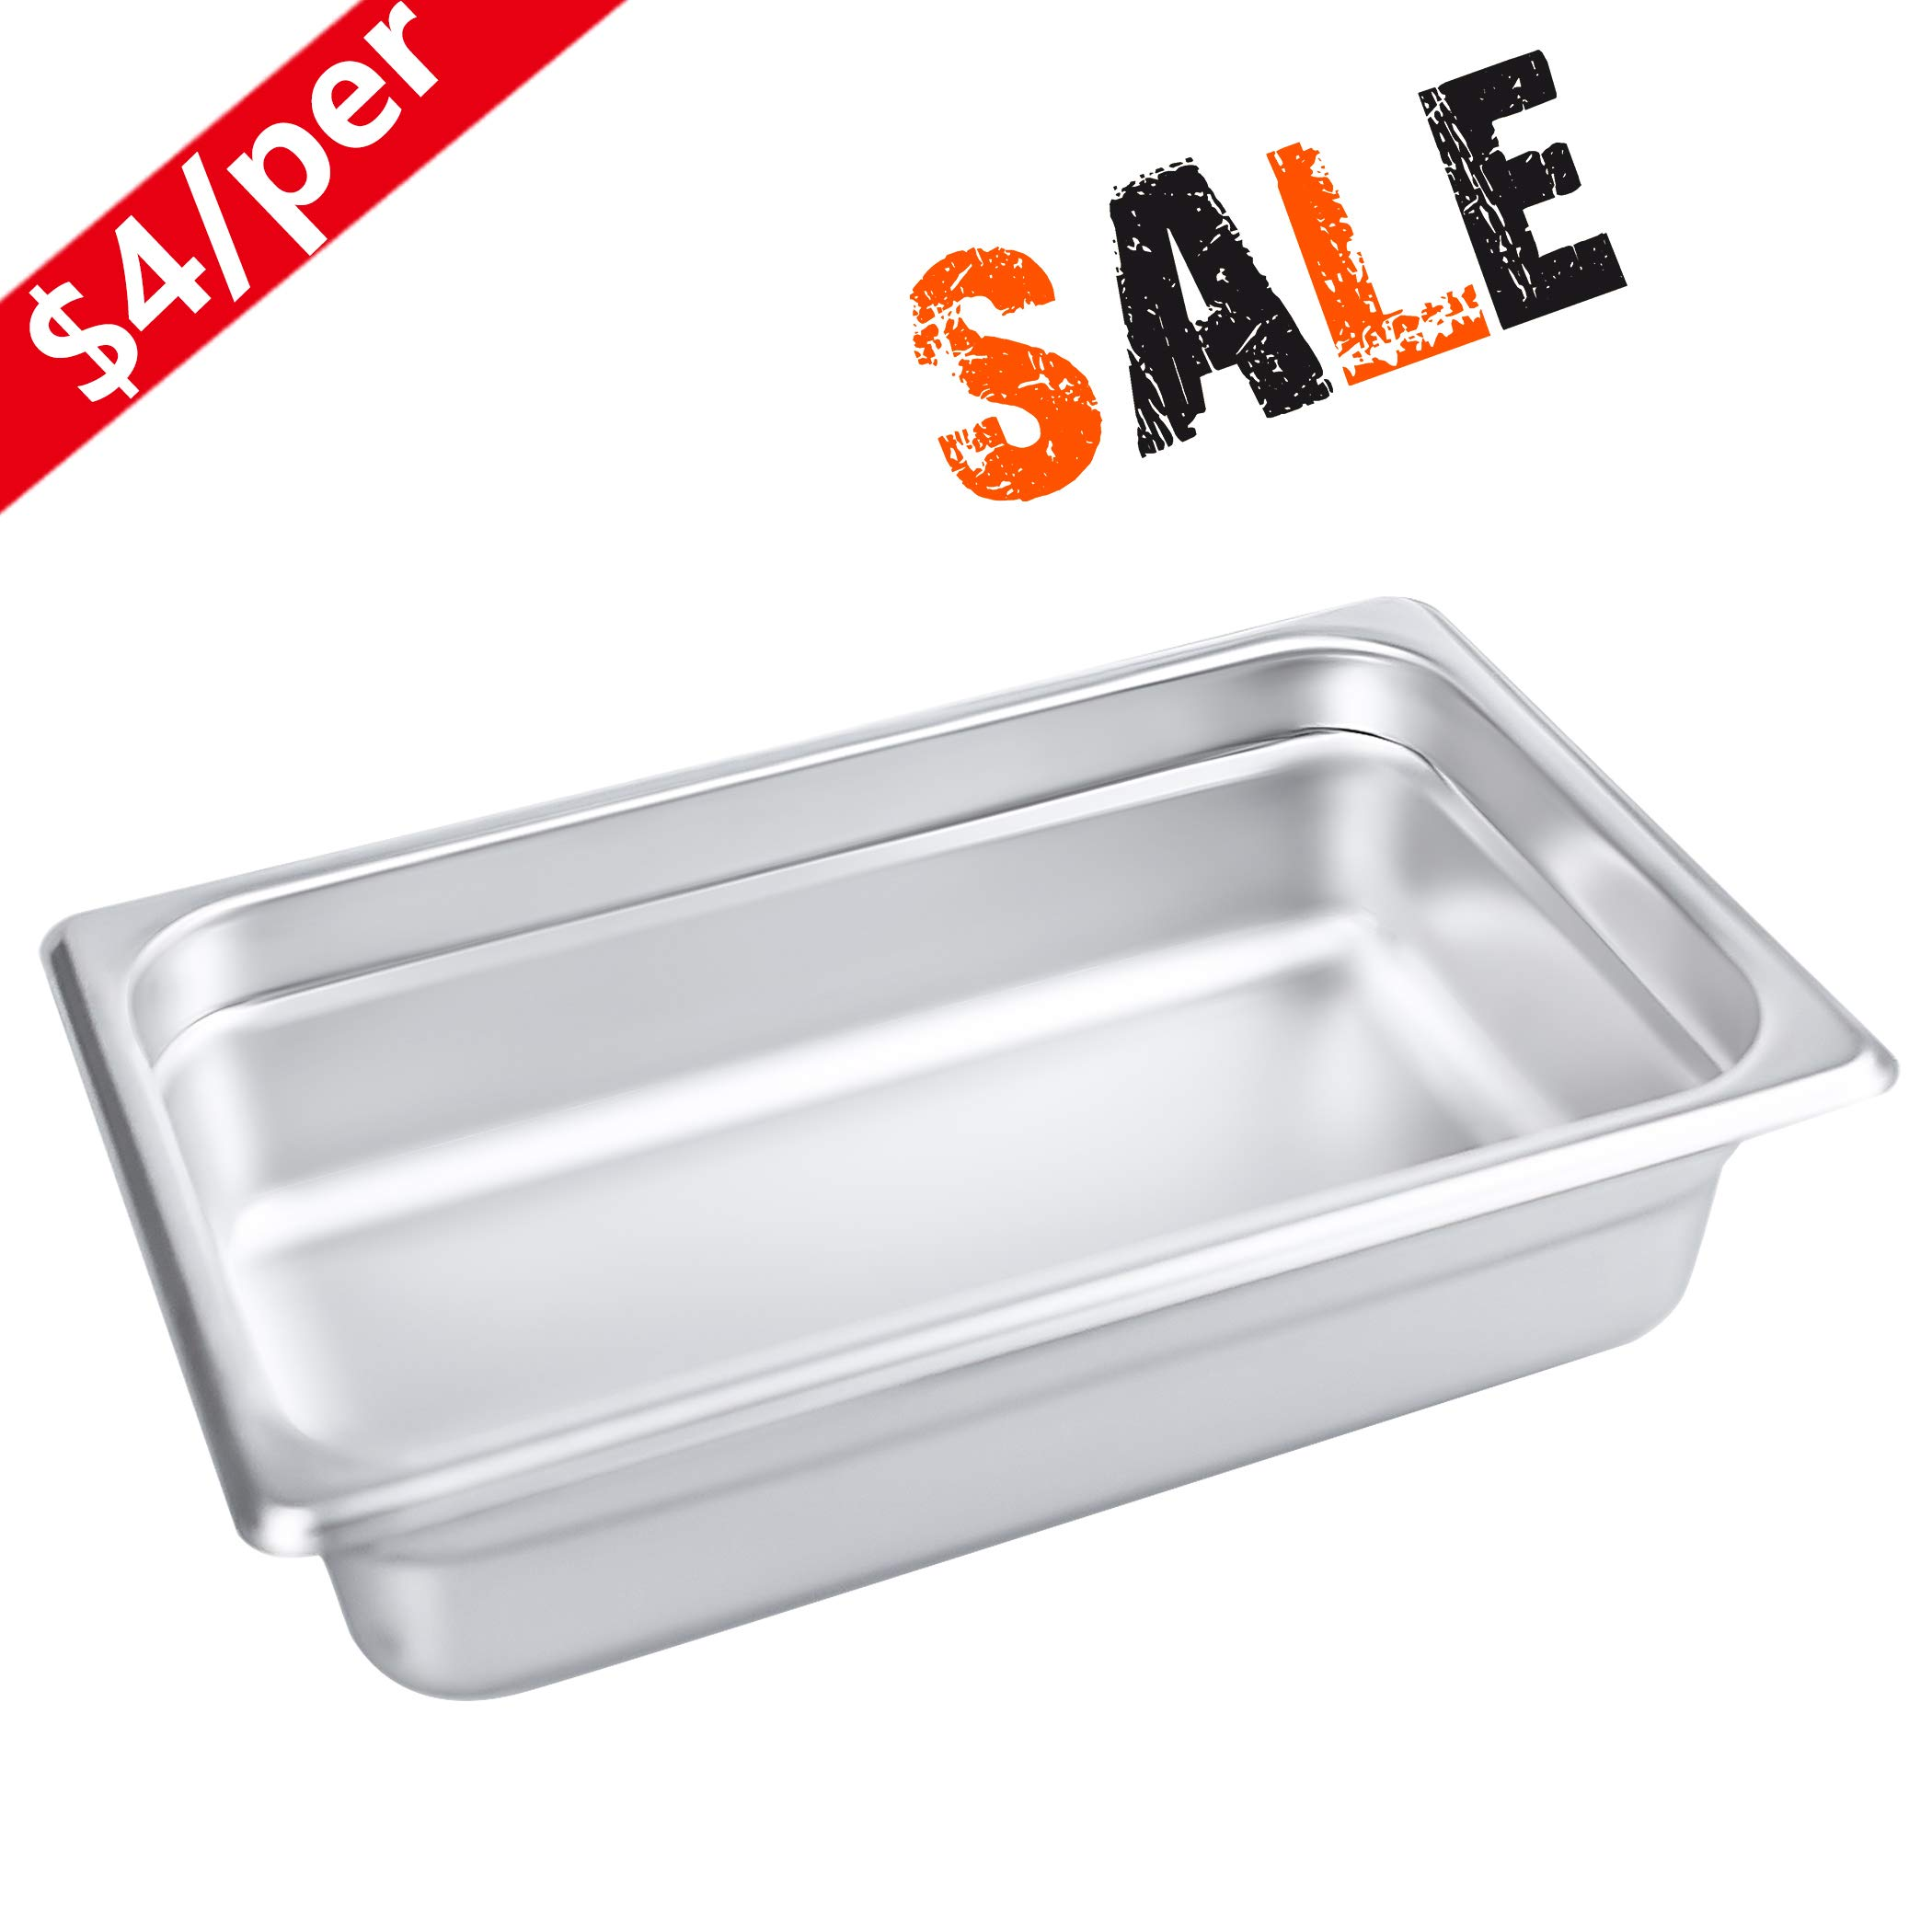 2 1/2'' Deep Steam Table Pan 1/4 Size, Kitma1.8 Quart Stainless Steel Anti-Jam Standard Weight Hotel GN Food Pans - NSF (10.43''L x 6.37''W) - 12 Pack by KITMA